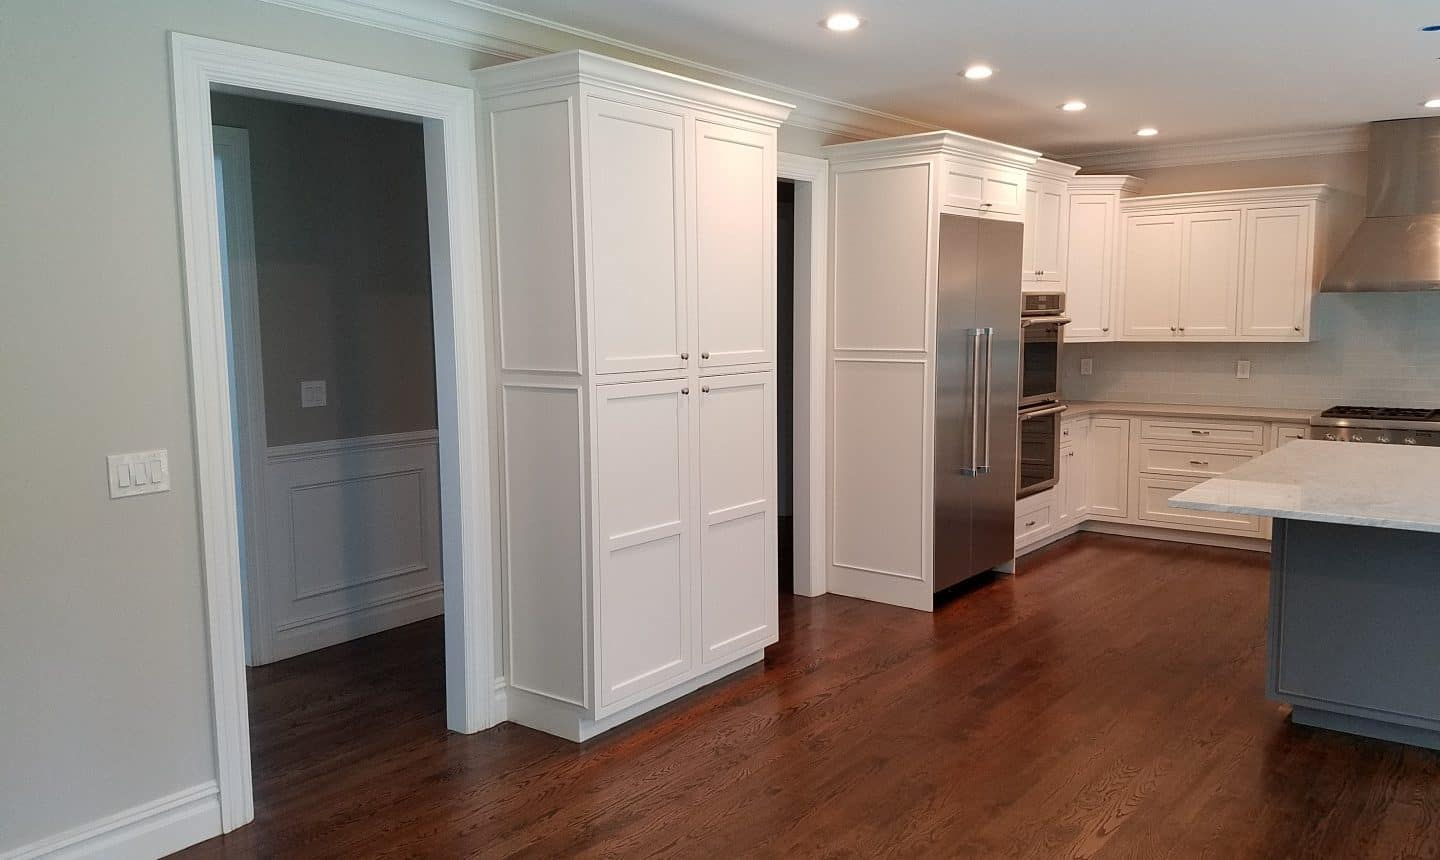 A lot of cabinets in these homes.